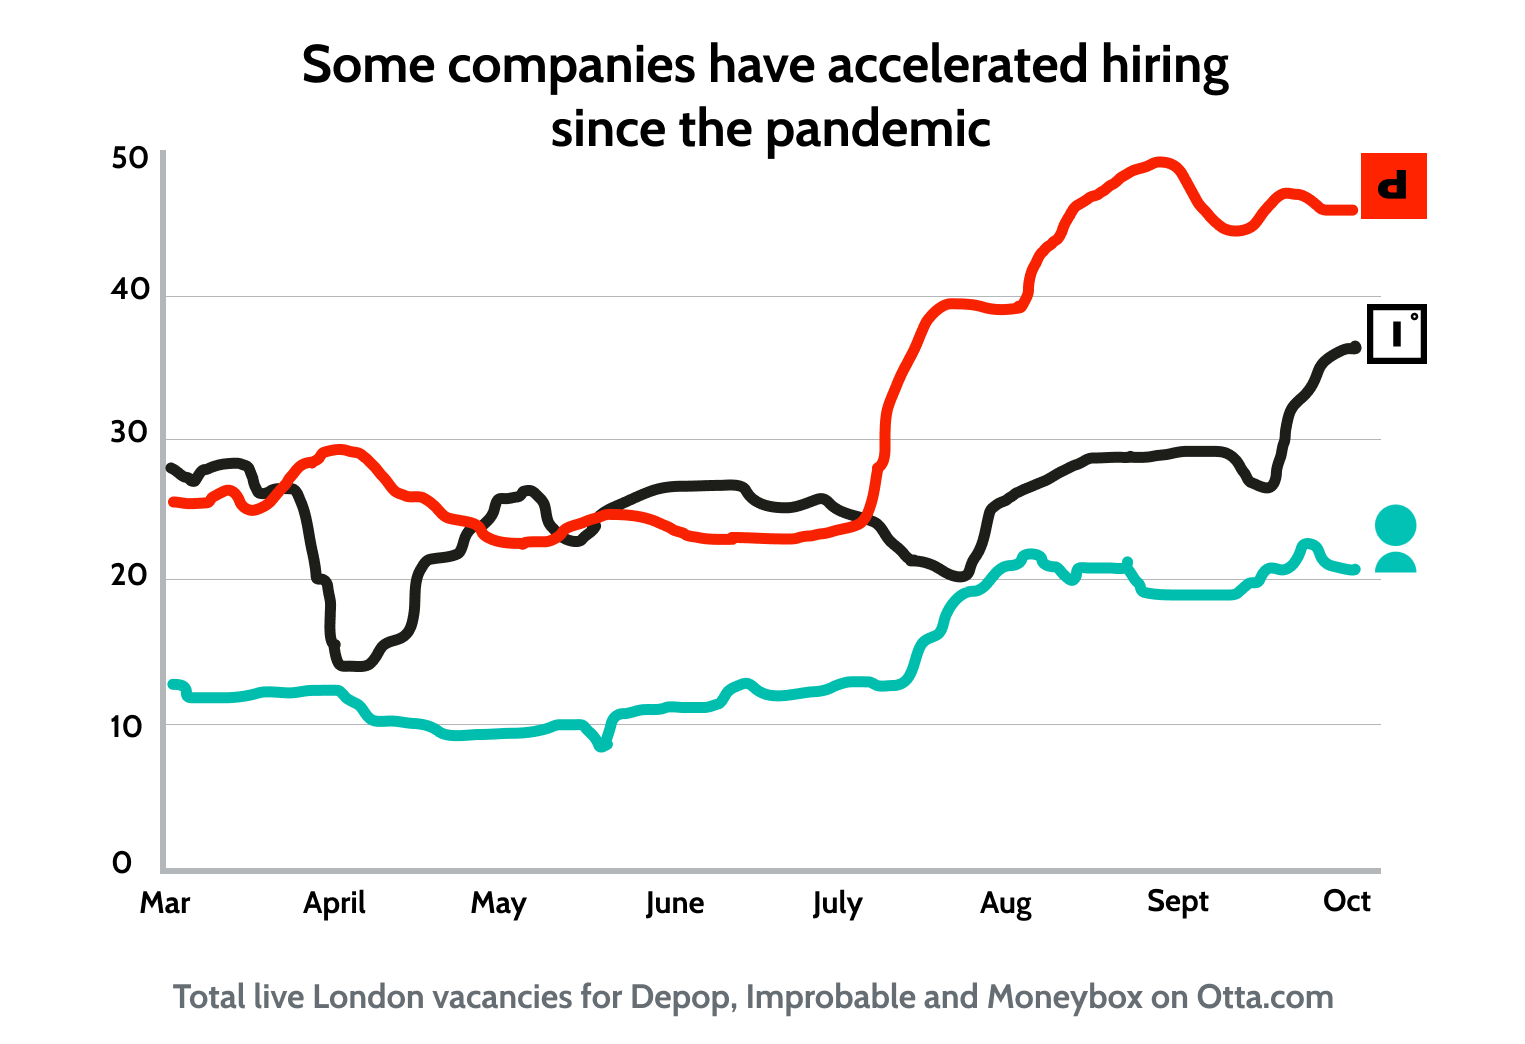 Some companies have accelerated hiring since the pandemic began.